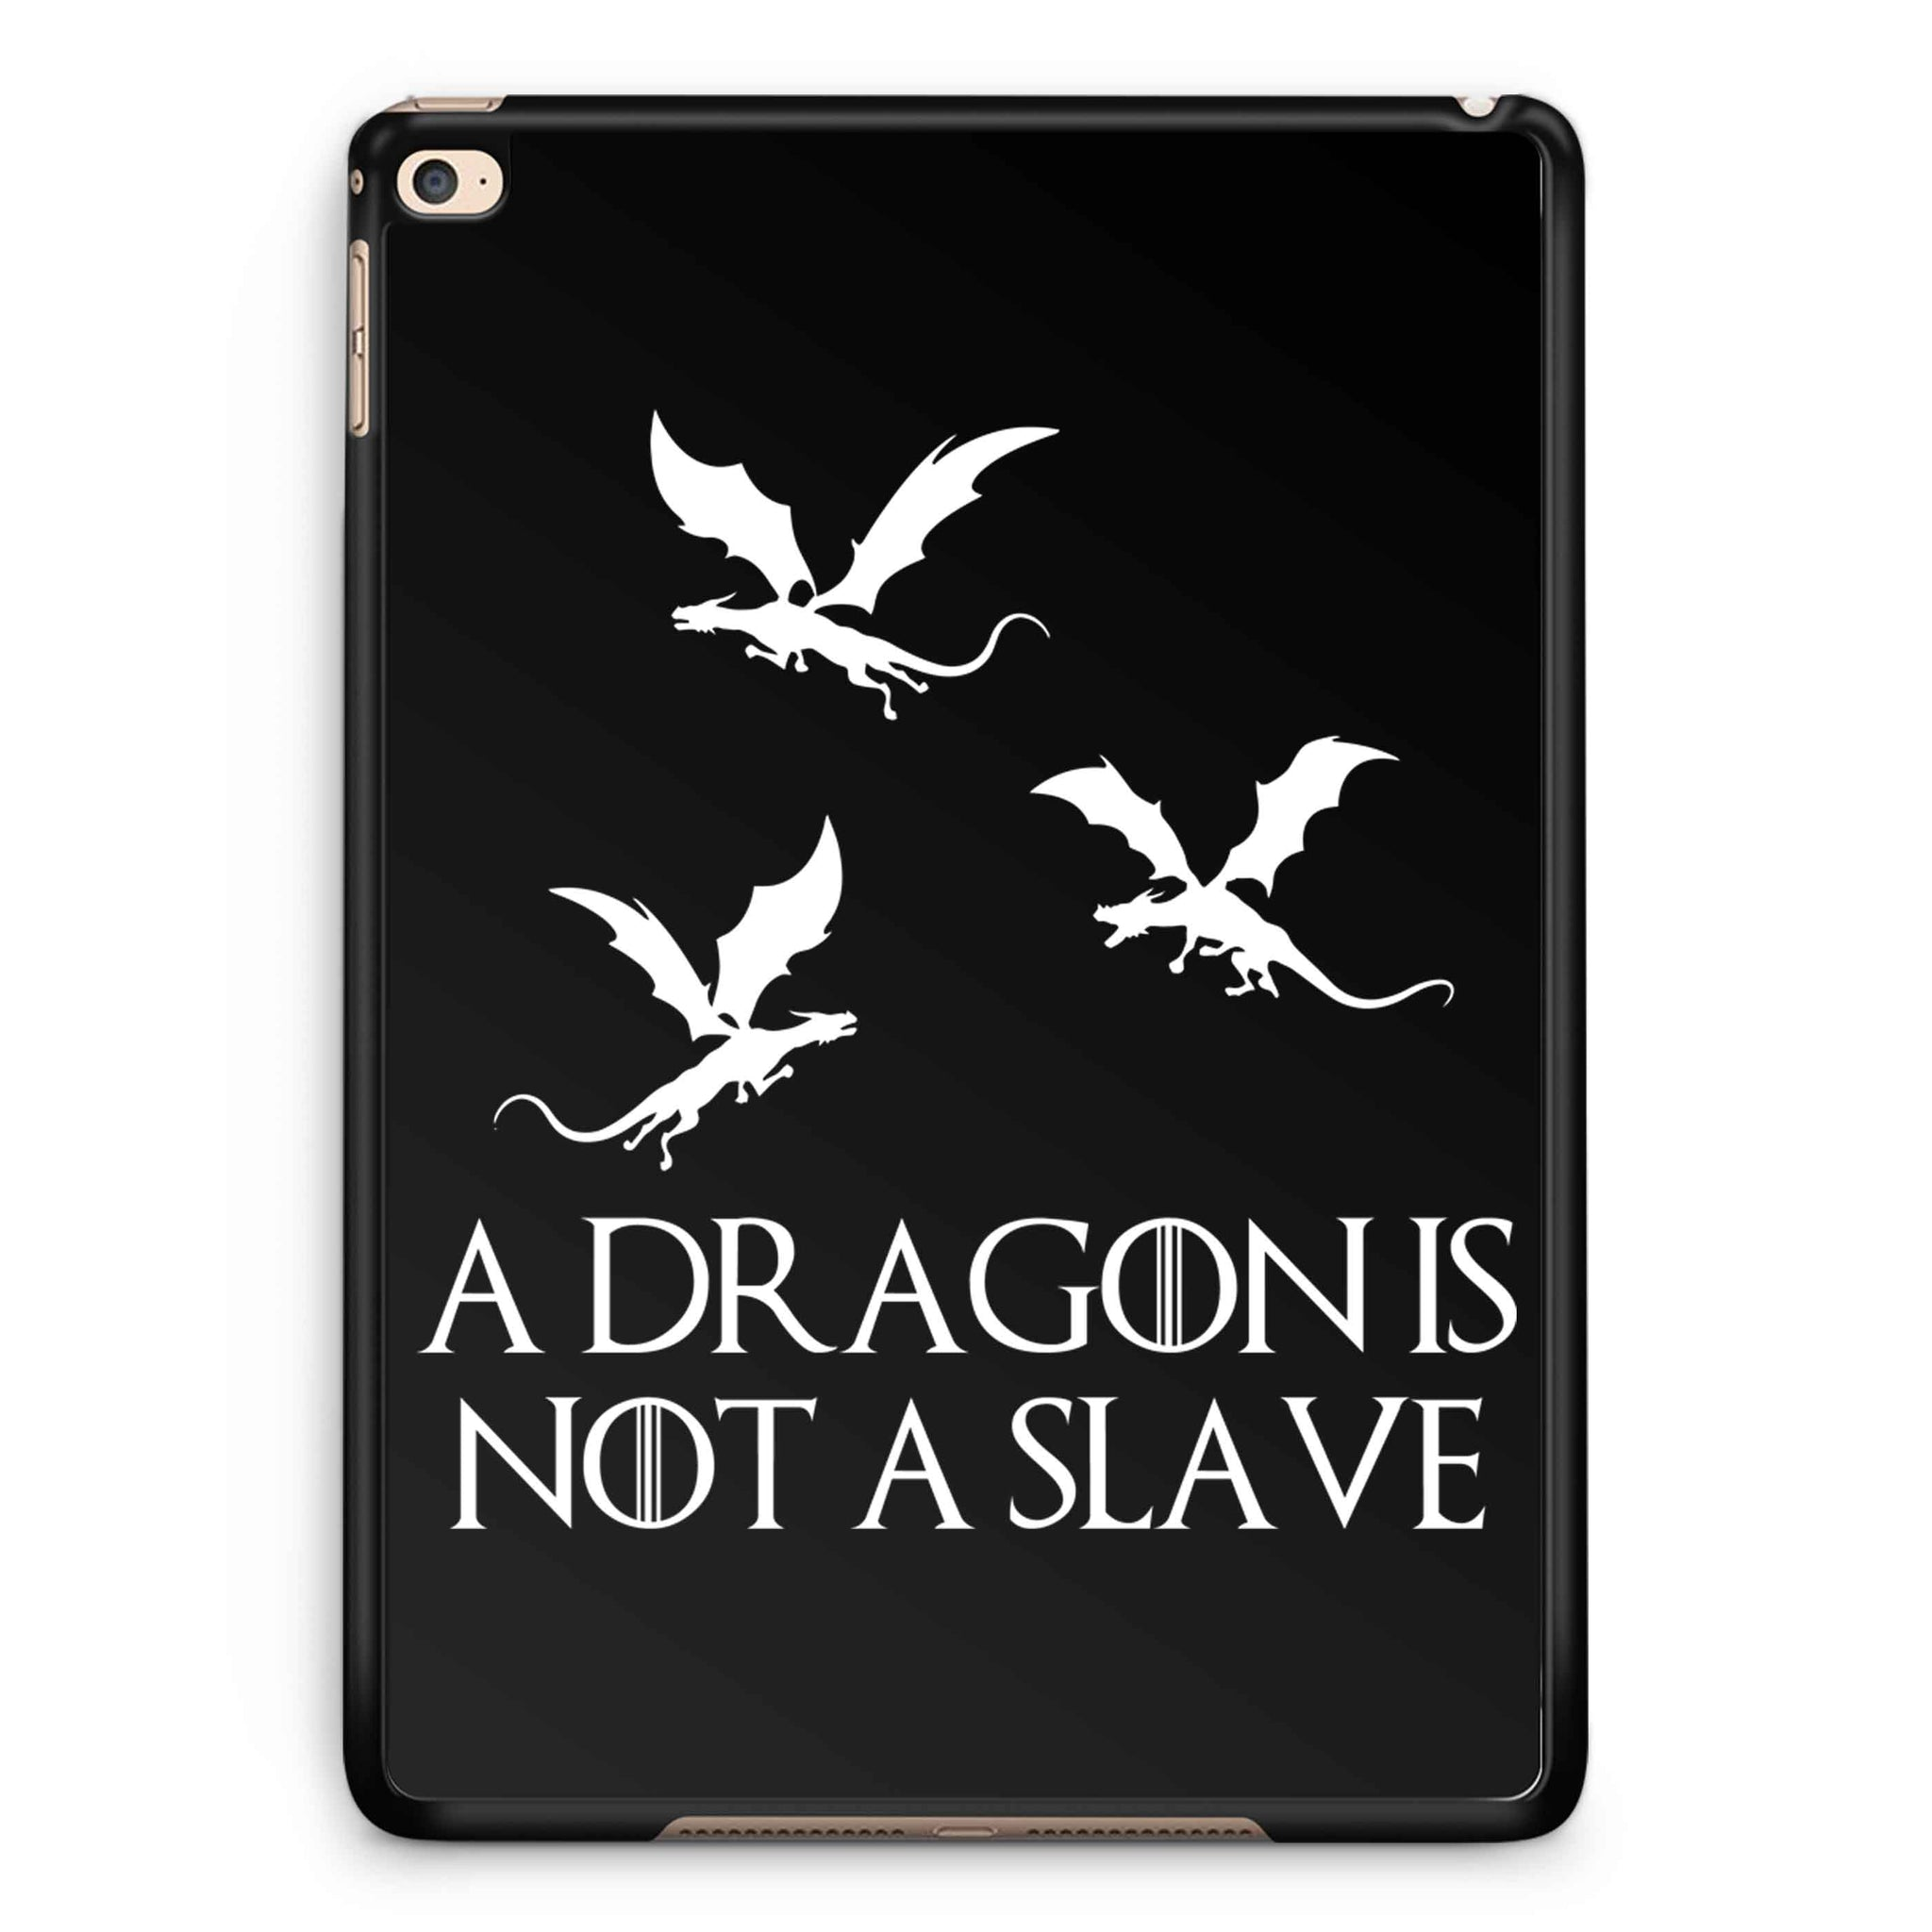 A Dragon Is Not A Slave Iconic Quote iPad 2 / 3 / 4 / 5 / 6| iPad Air / Air 2 | iPad Mini 1 / 2 / 3 / 4 | iPad Pro Case